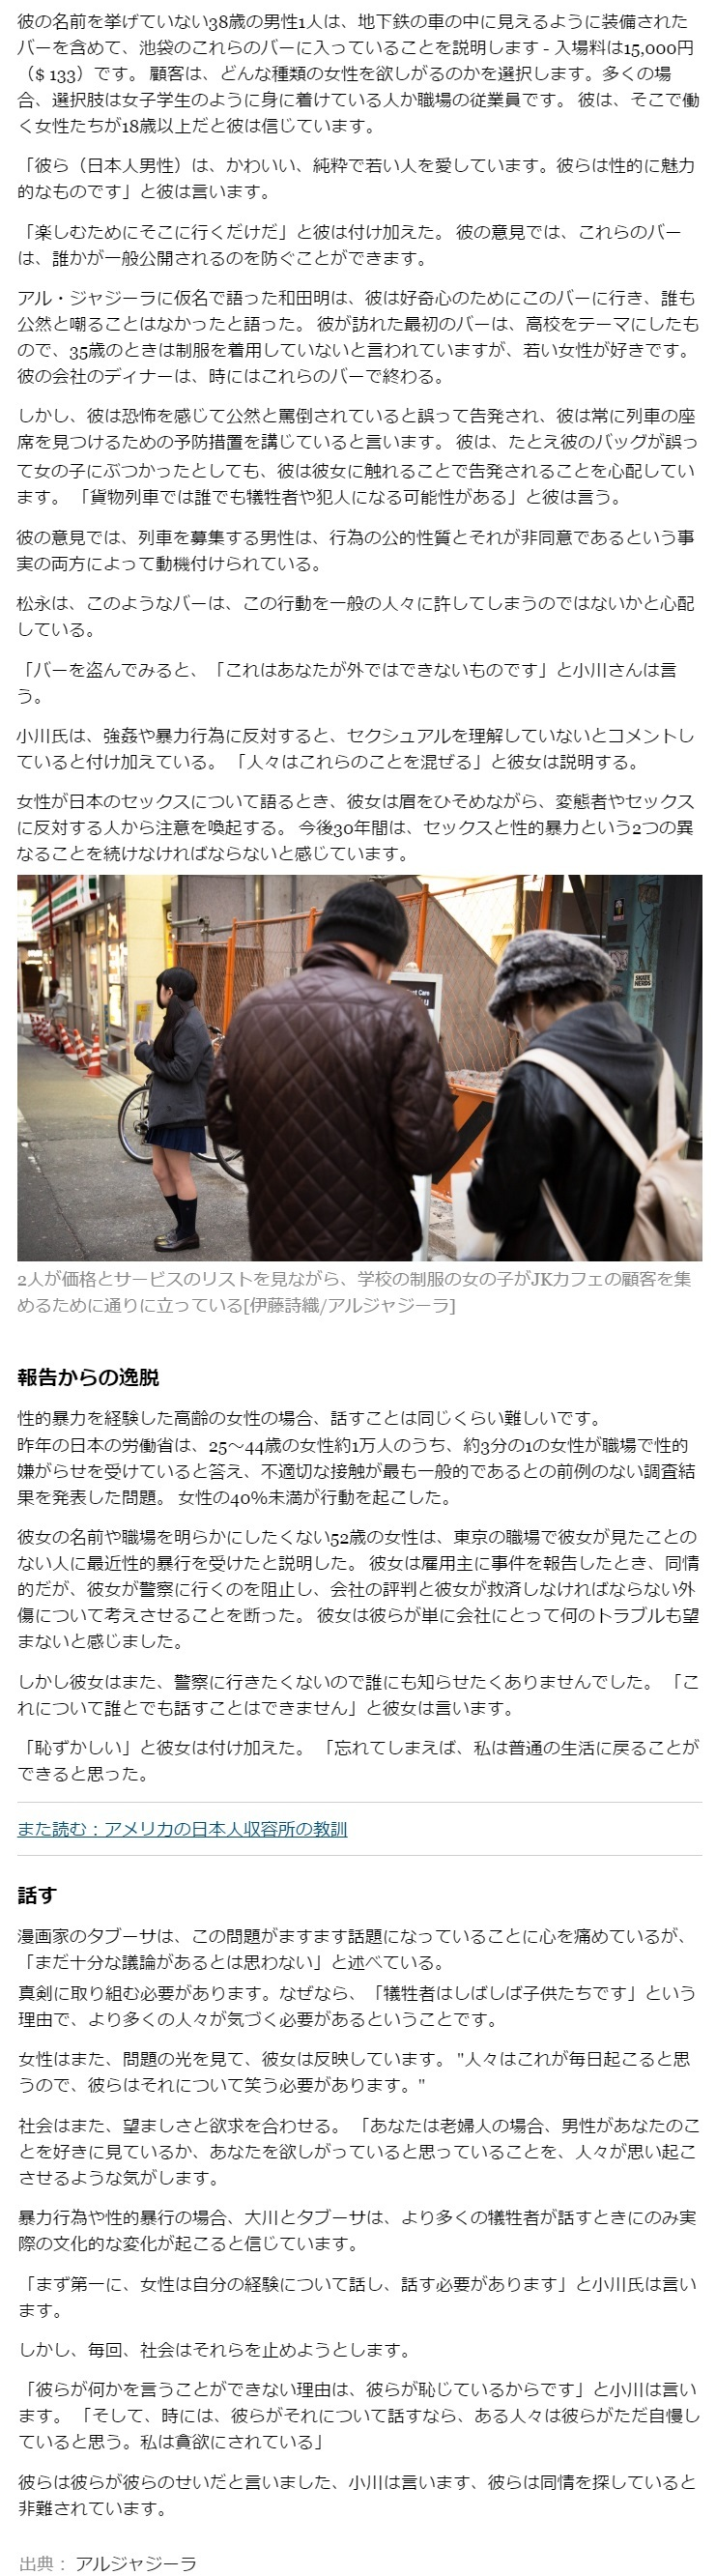 Sexual assault in Japan Every girl was a victim7